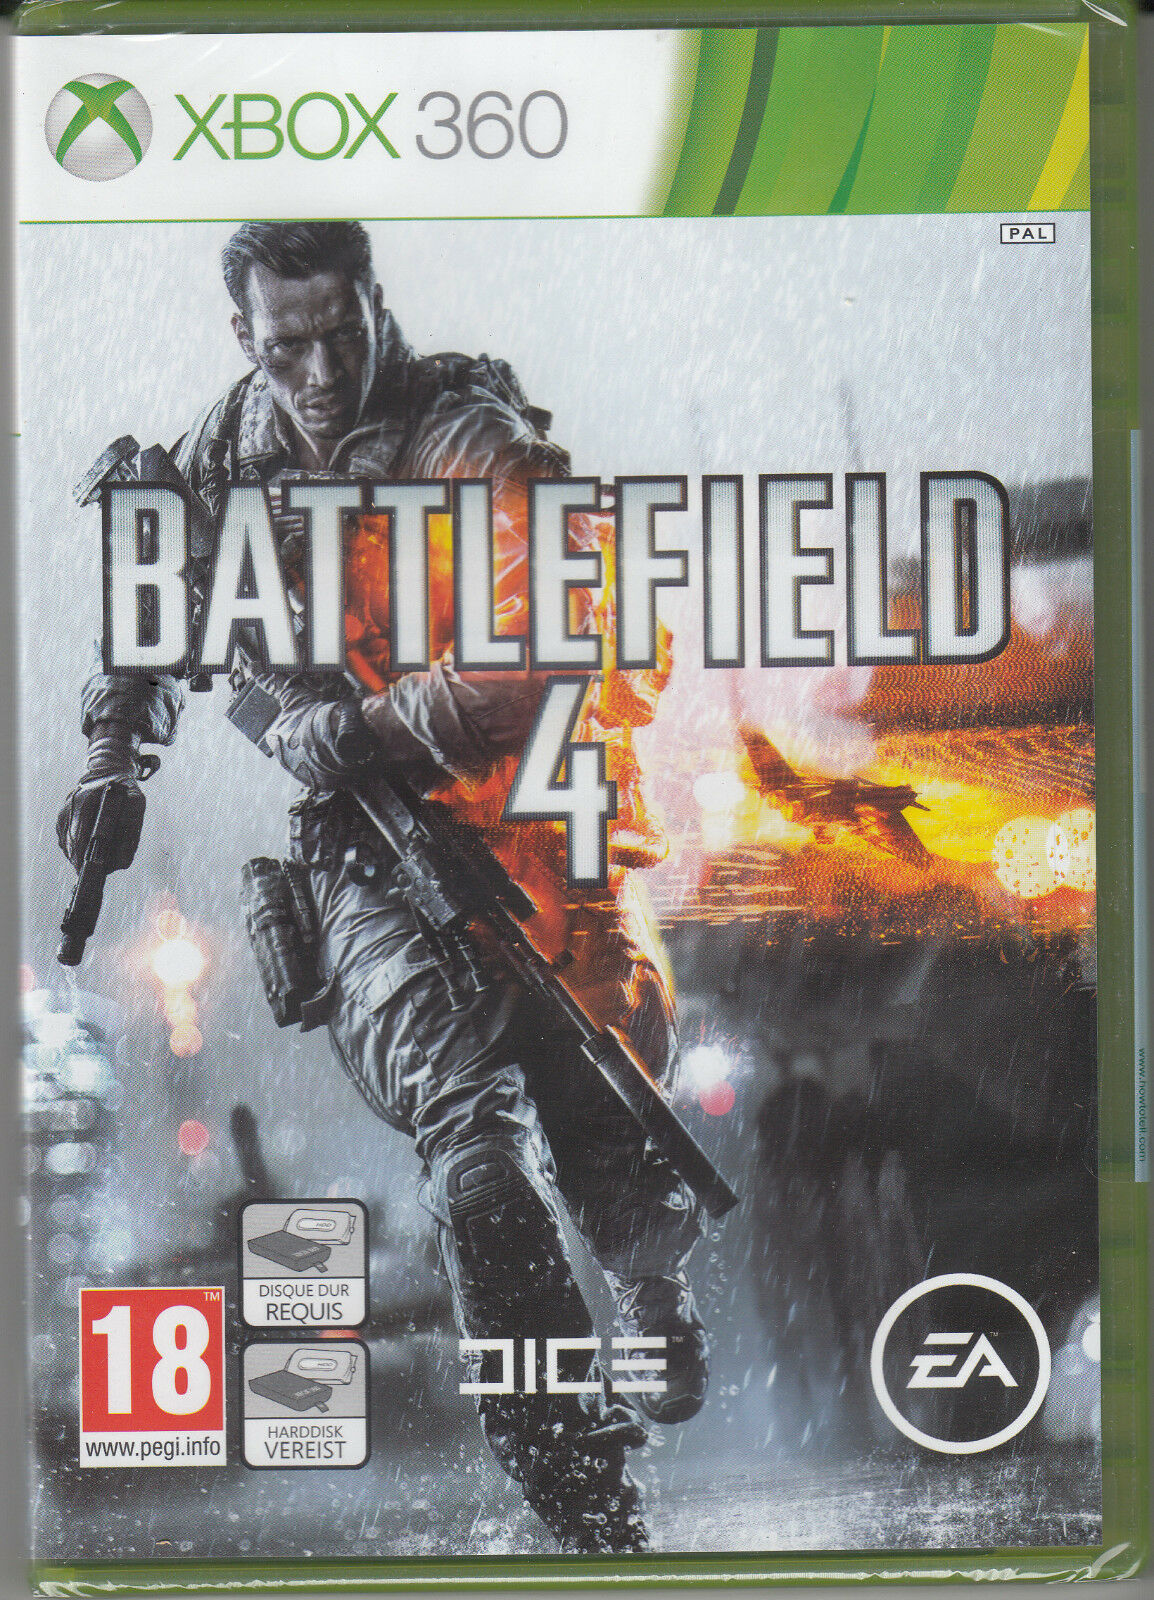 Xbox 360 Games - Battlefield 4 Xbox 360 Brand New Factory Sealed Fast Shipping.